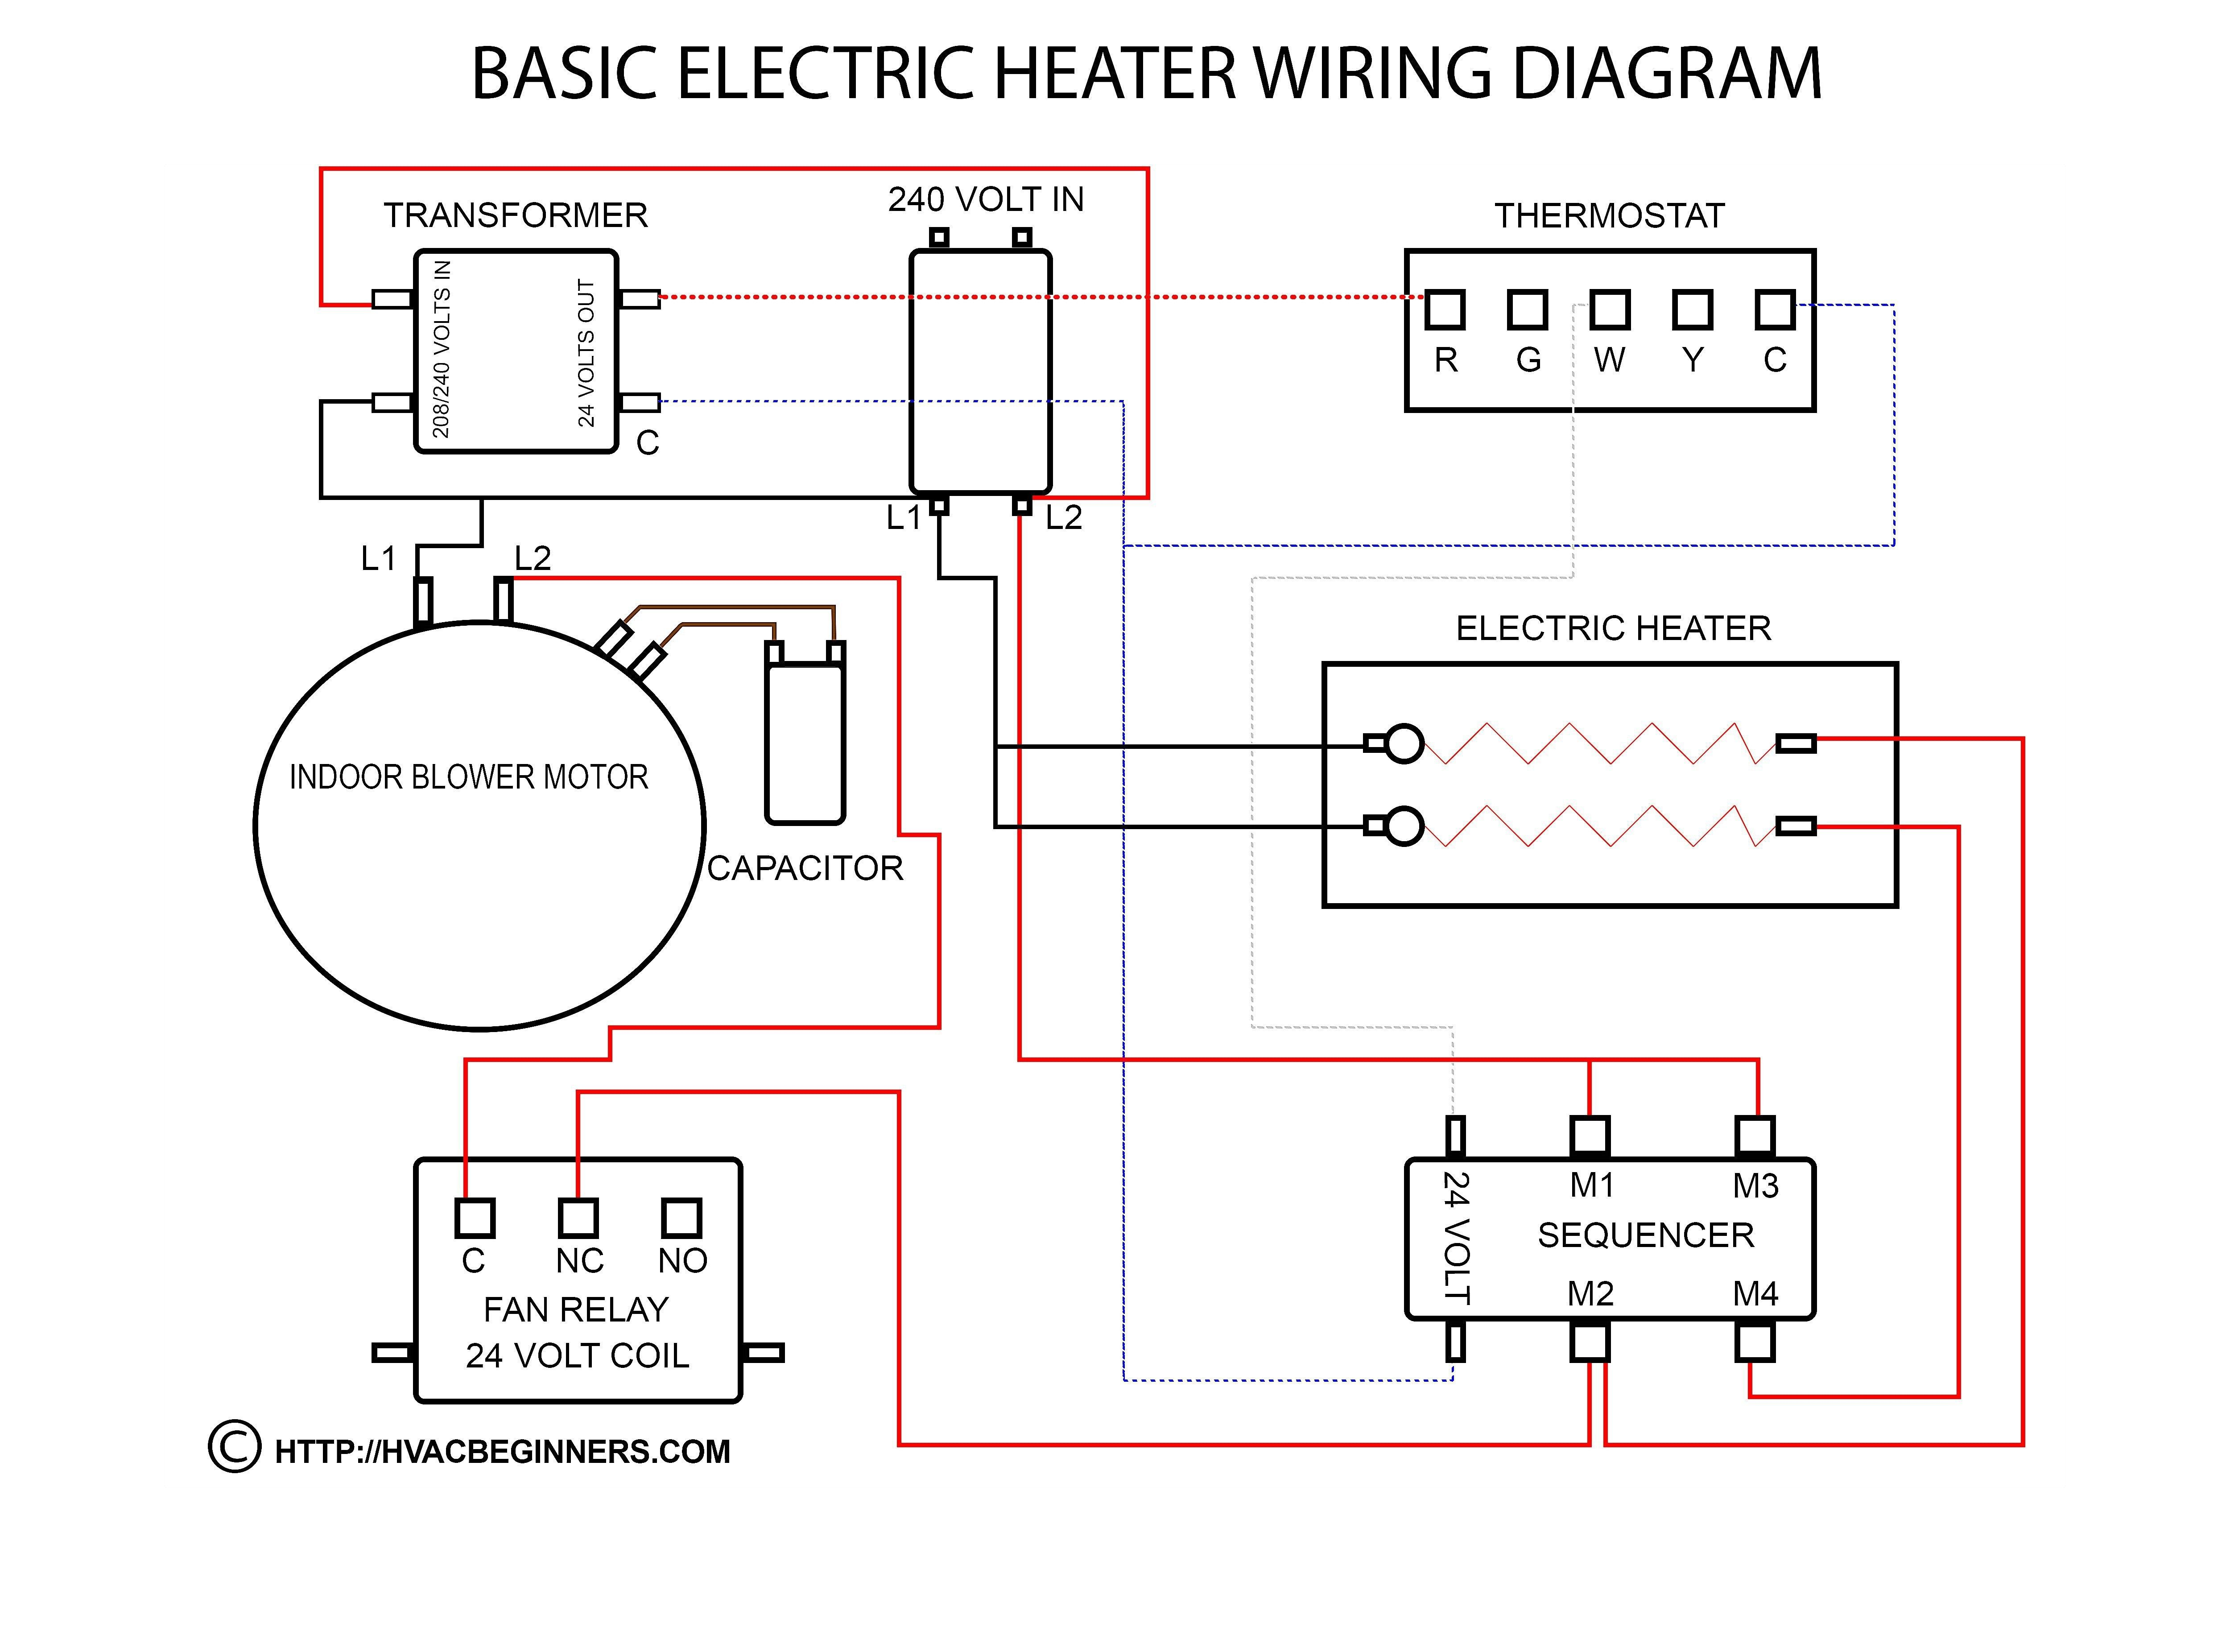 medium resolution of unique home wiring diagram sample diagram diagramsample diagramtemplate wiringdiagram diagramchart worksheet worksheettemplate